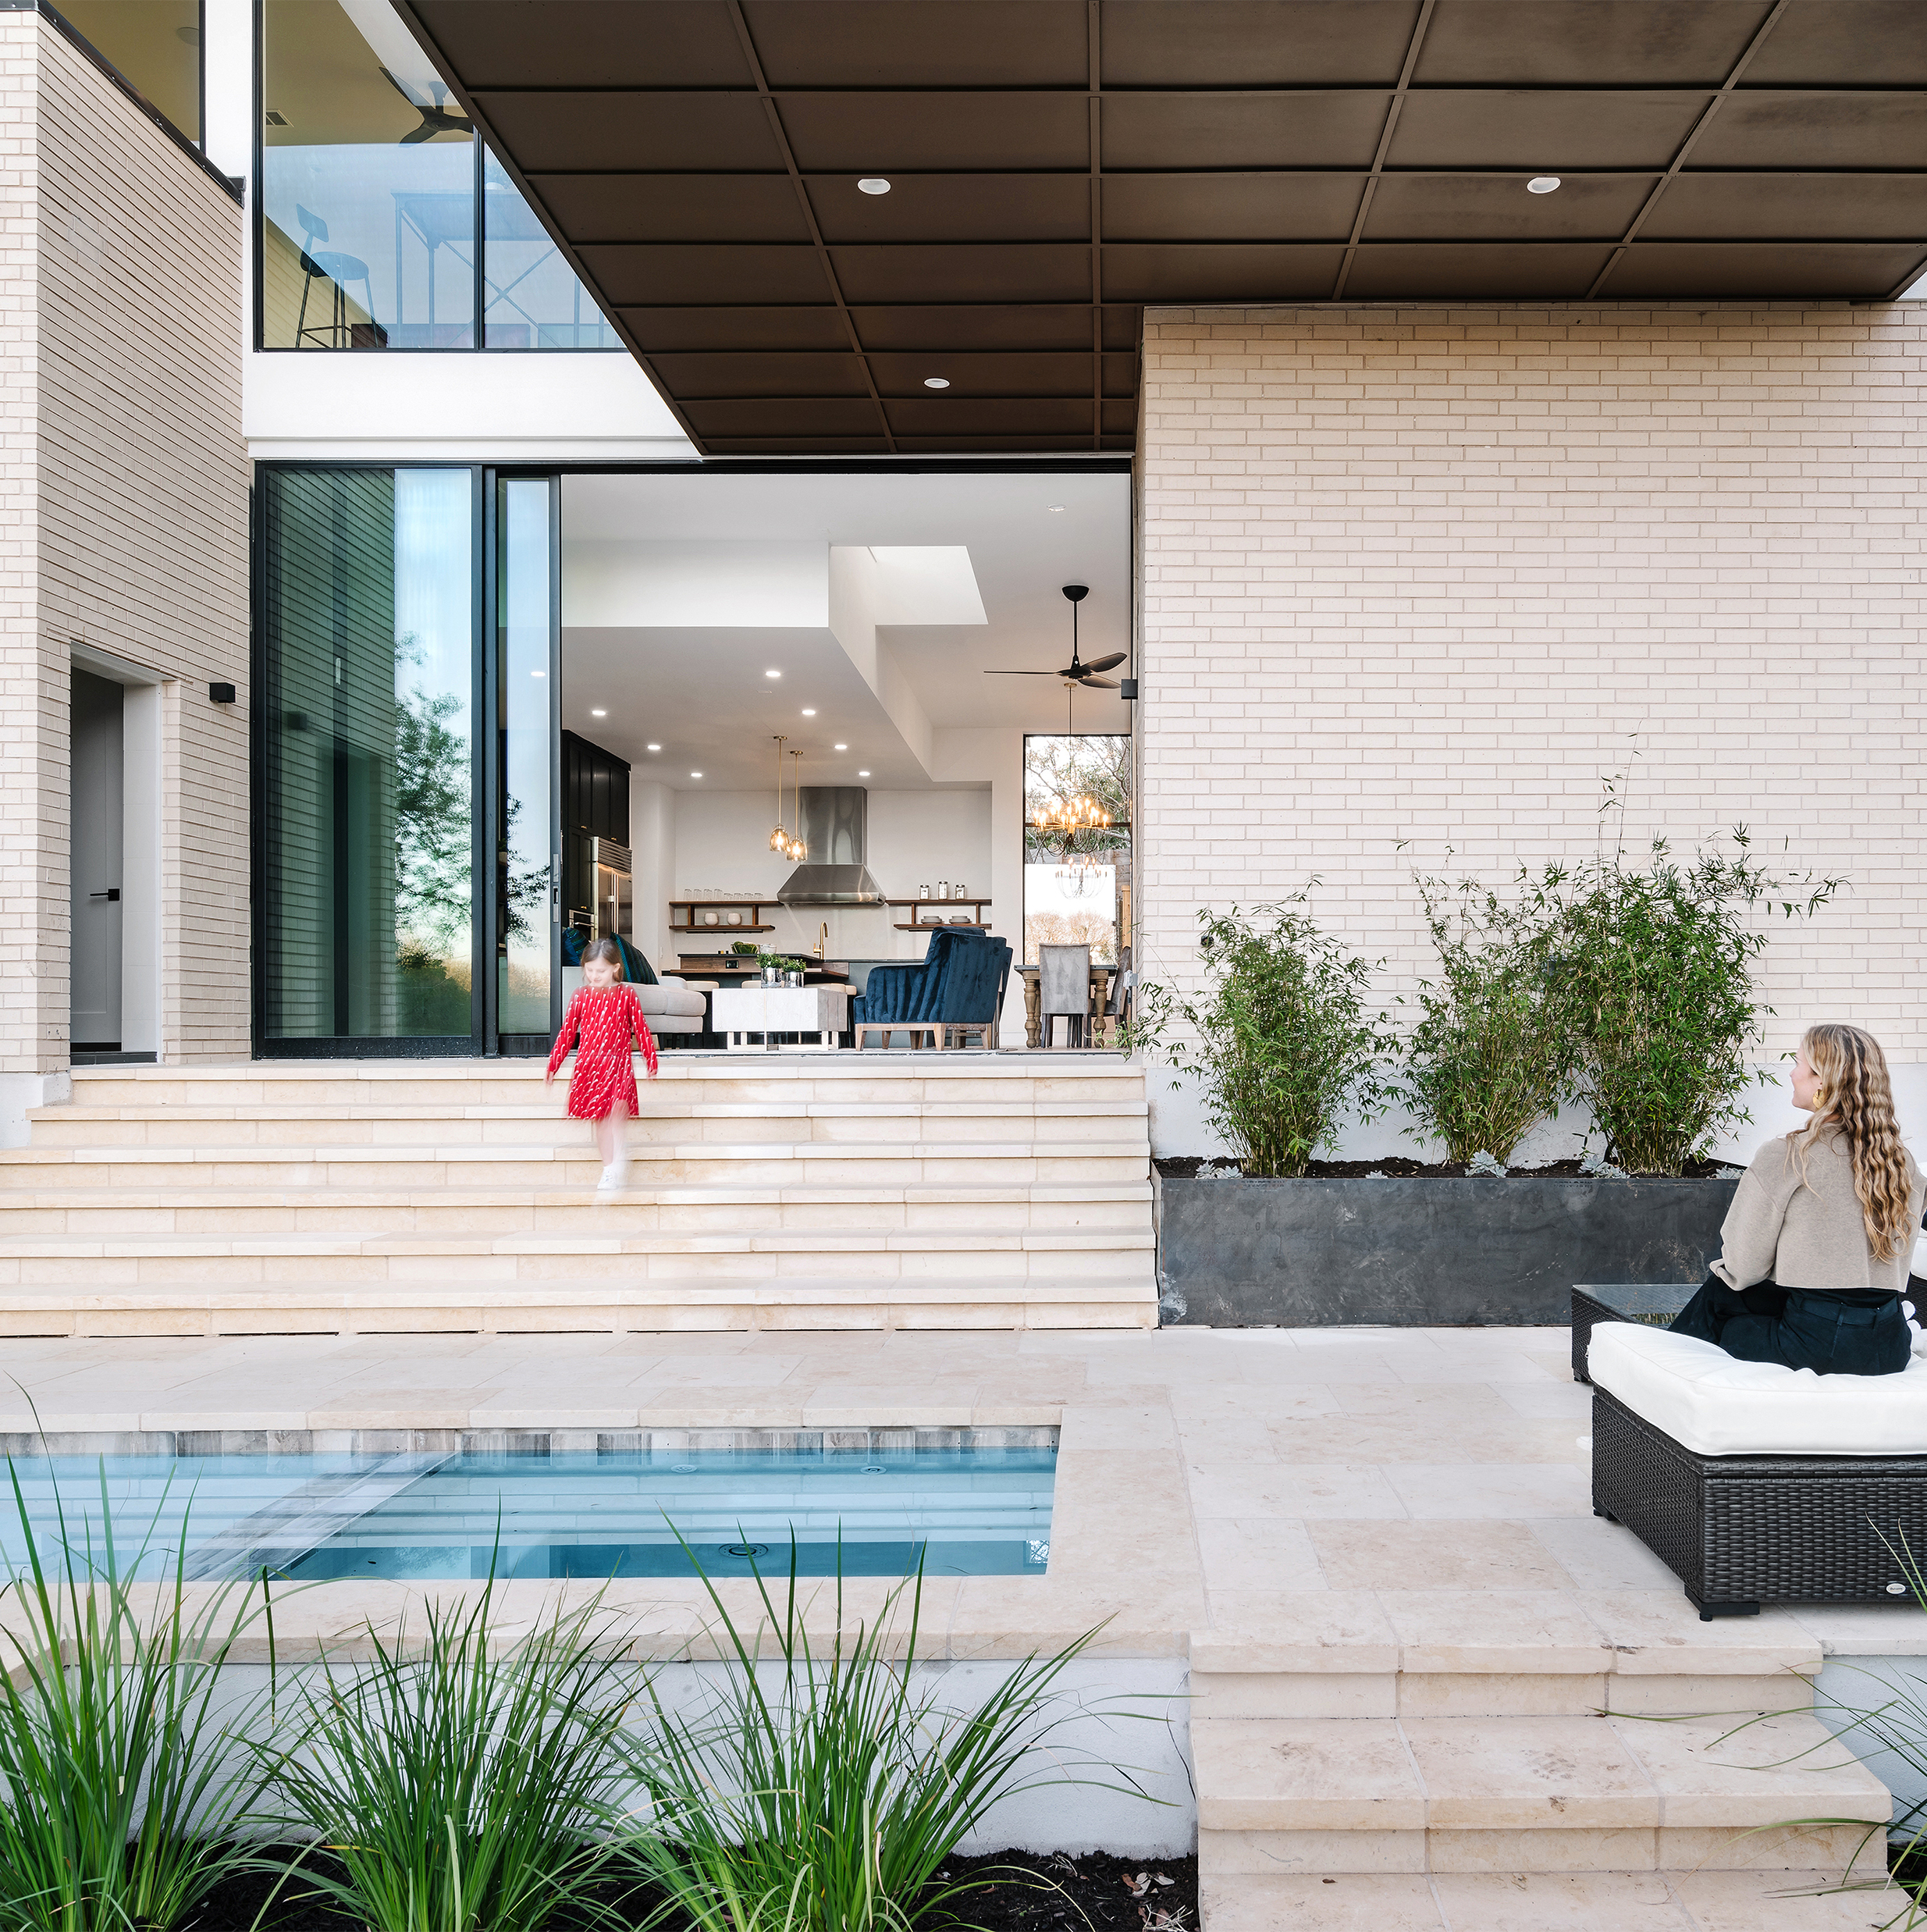 21 Allotted Space House by Matt Fajkus Architecture. Photo by Chase Daniel.jpg